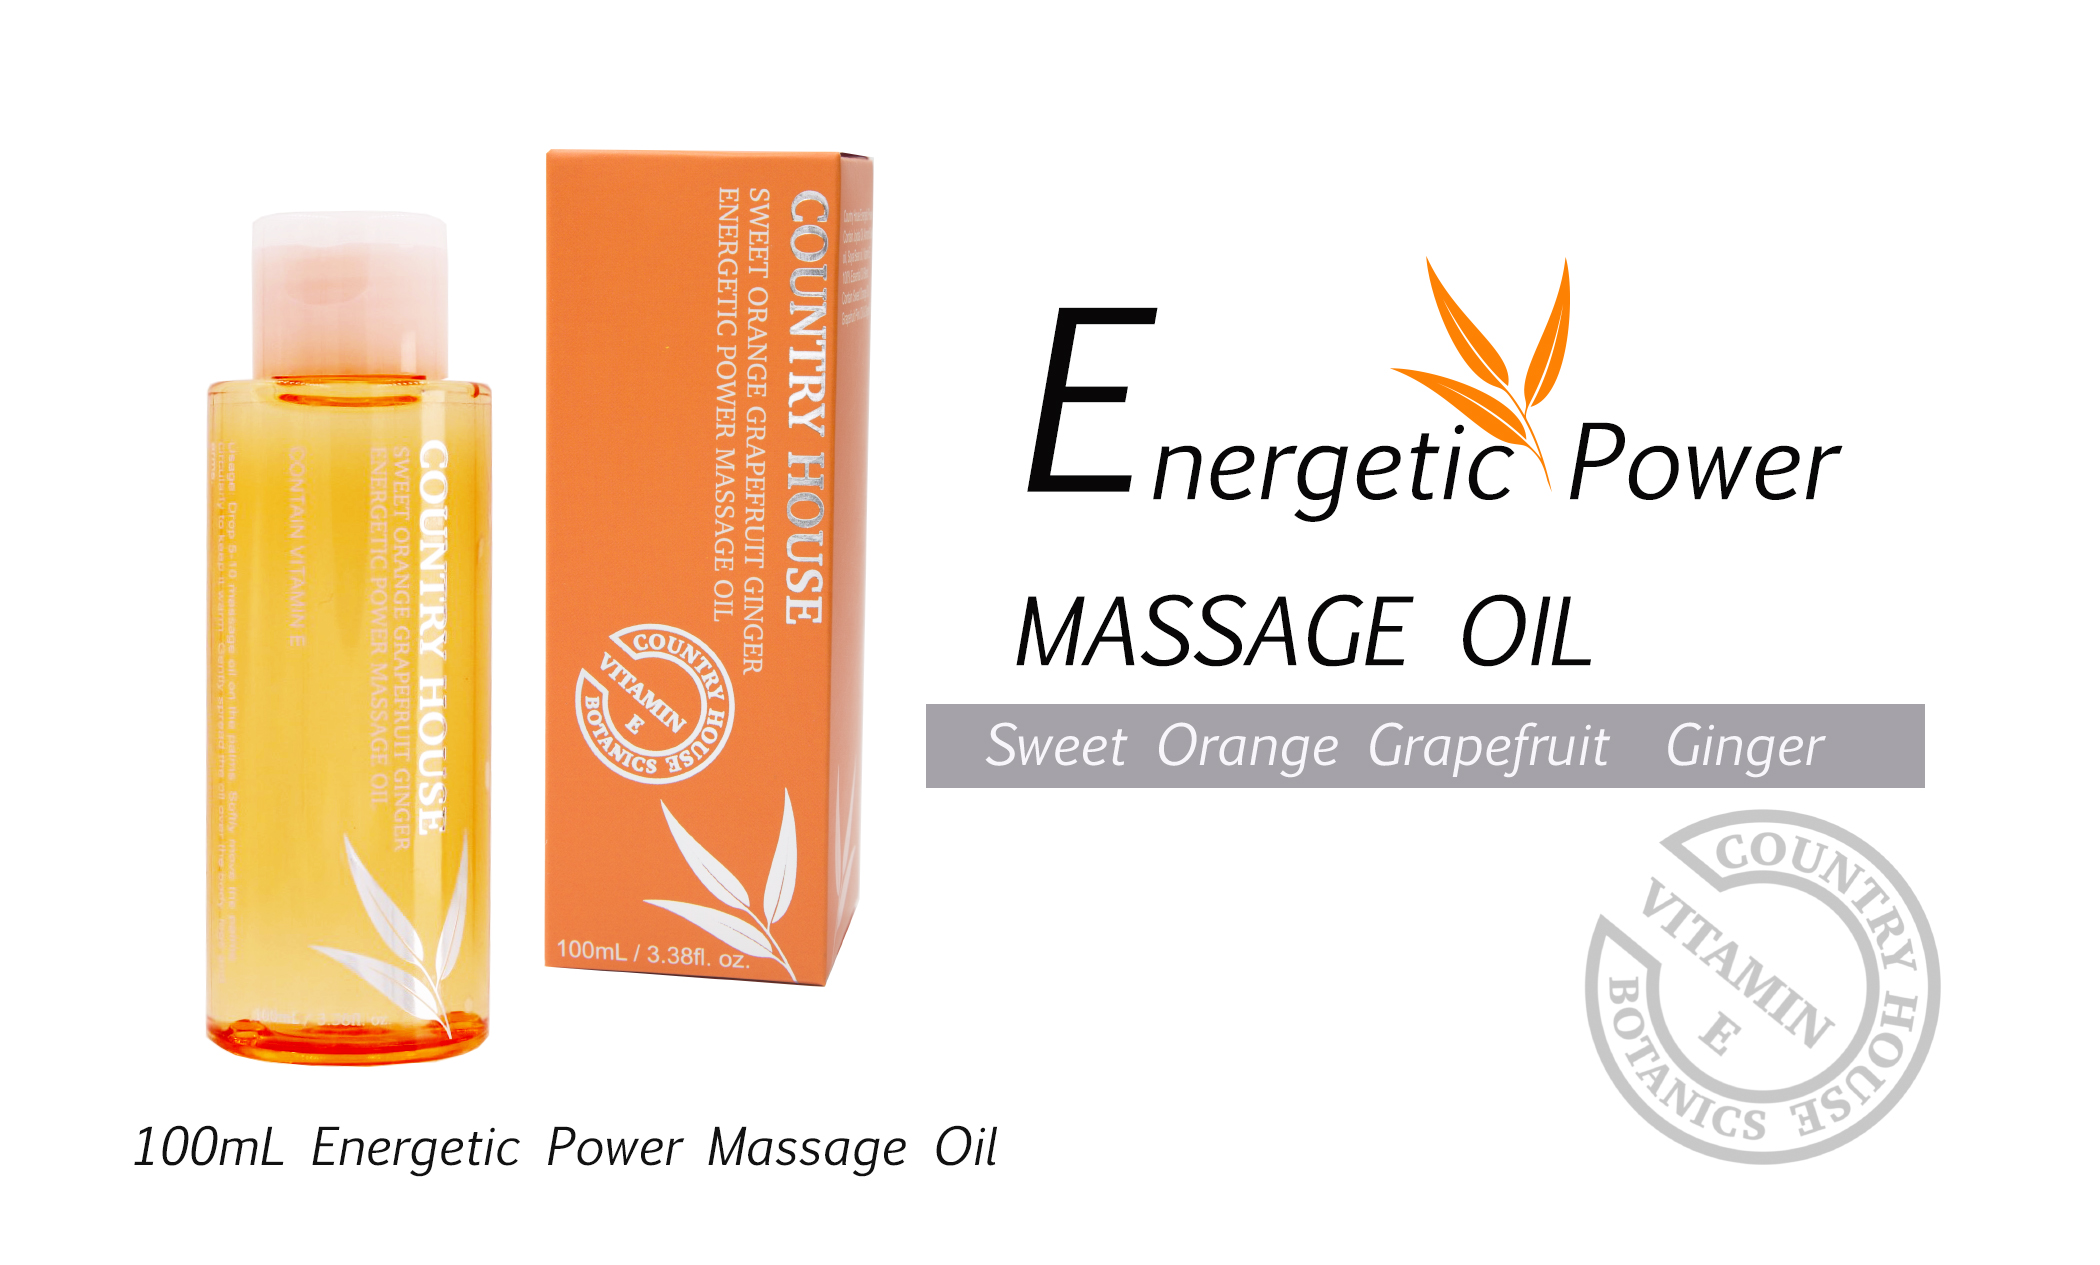 energetic power massage oil